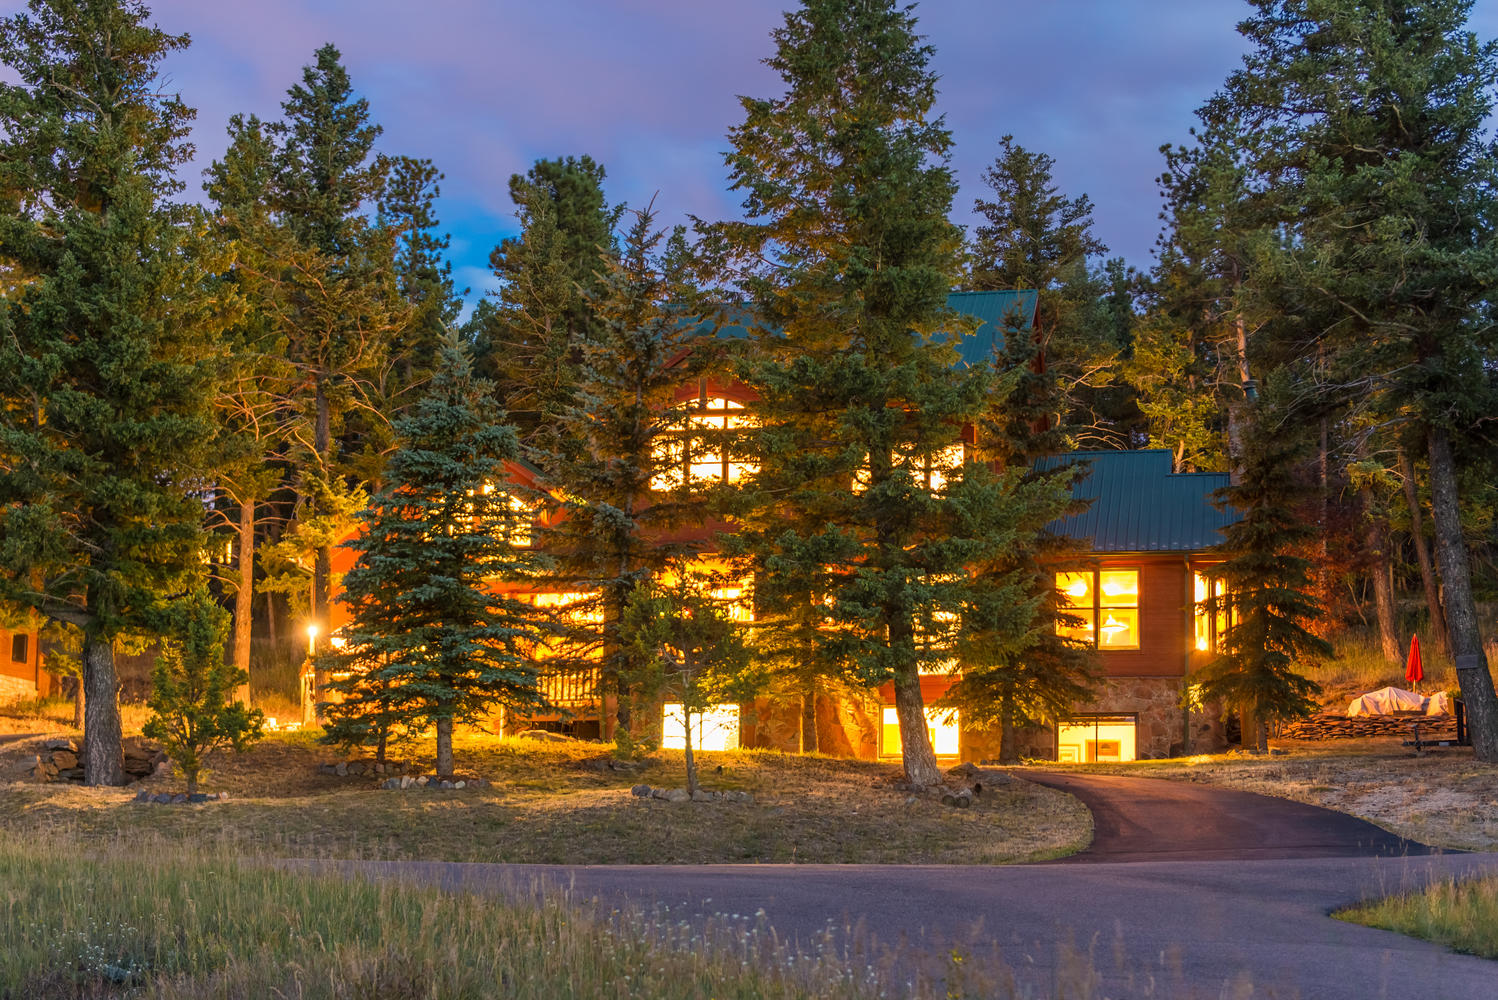 Single Family Home for Sale at Lovely Genesee Reservation 23505 Waynes Way Golden, Colorado, 80401 United States